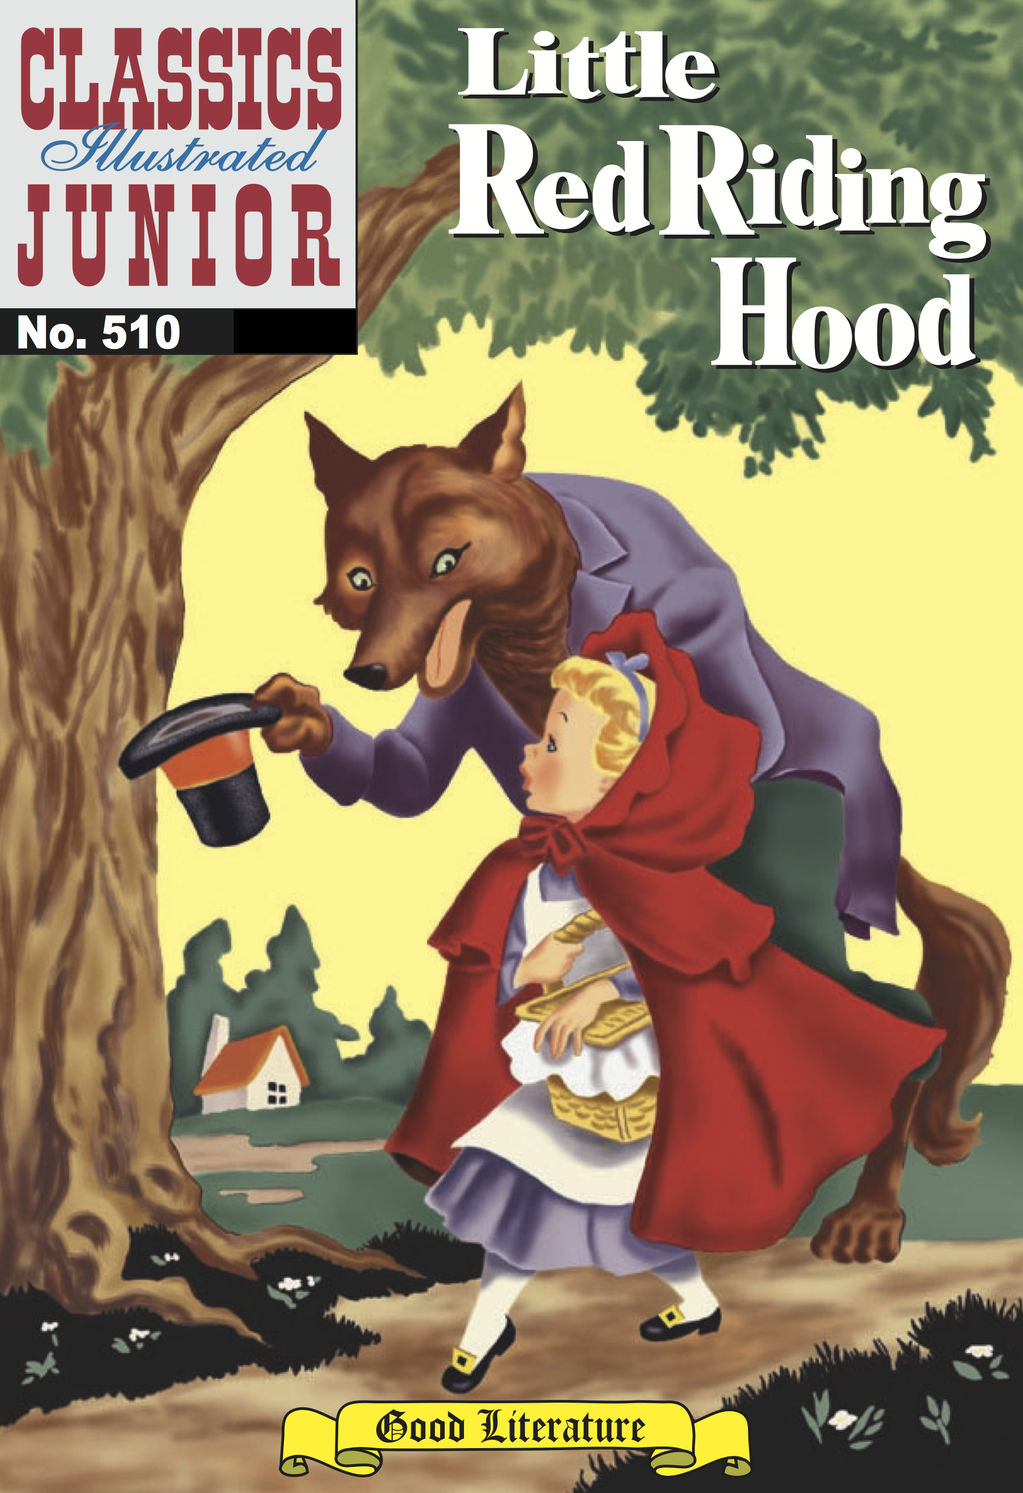 Little Red Riding Hood - Classics Illustrated Junior #510